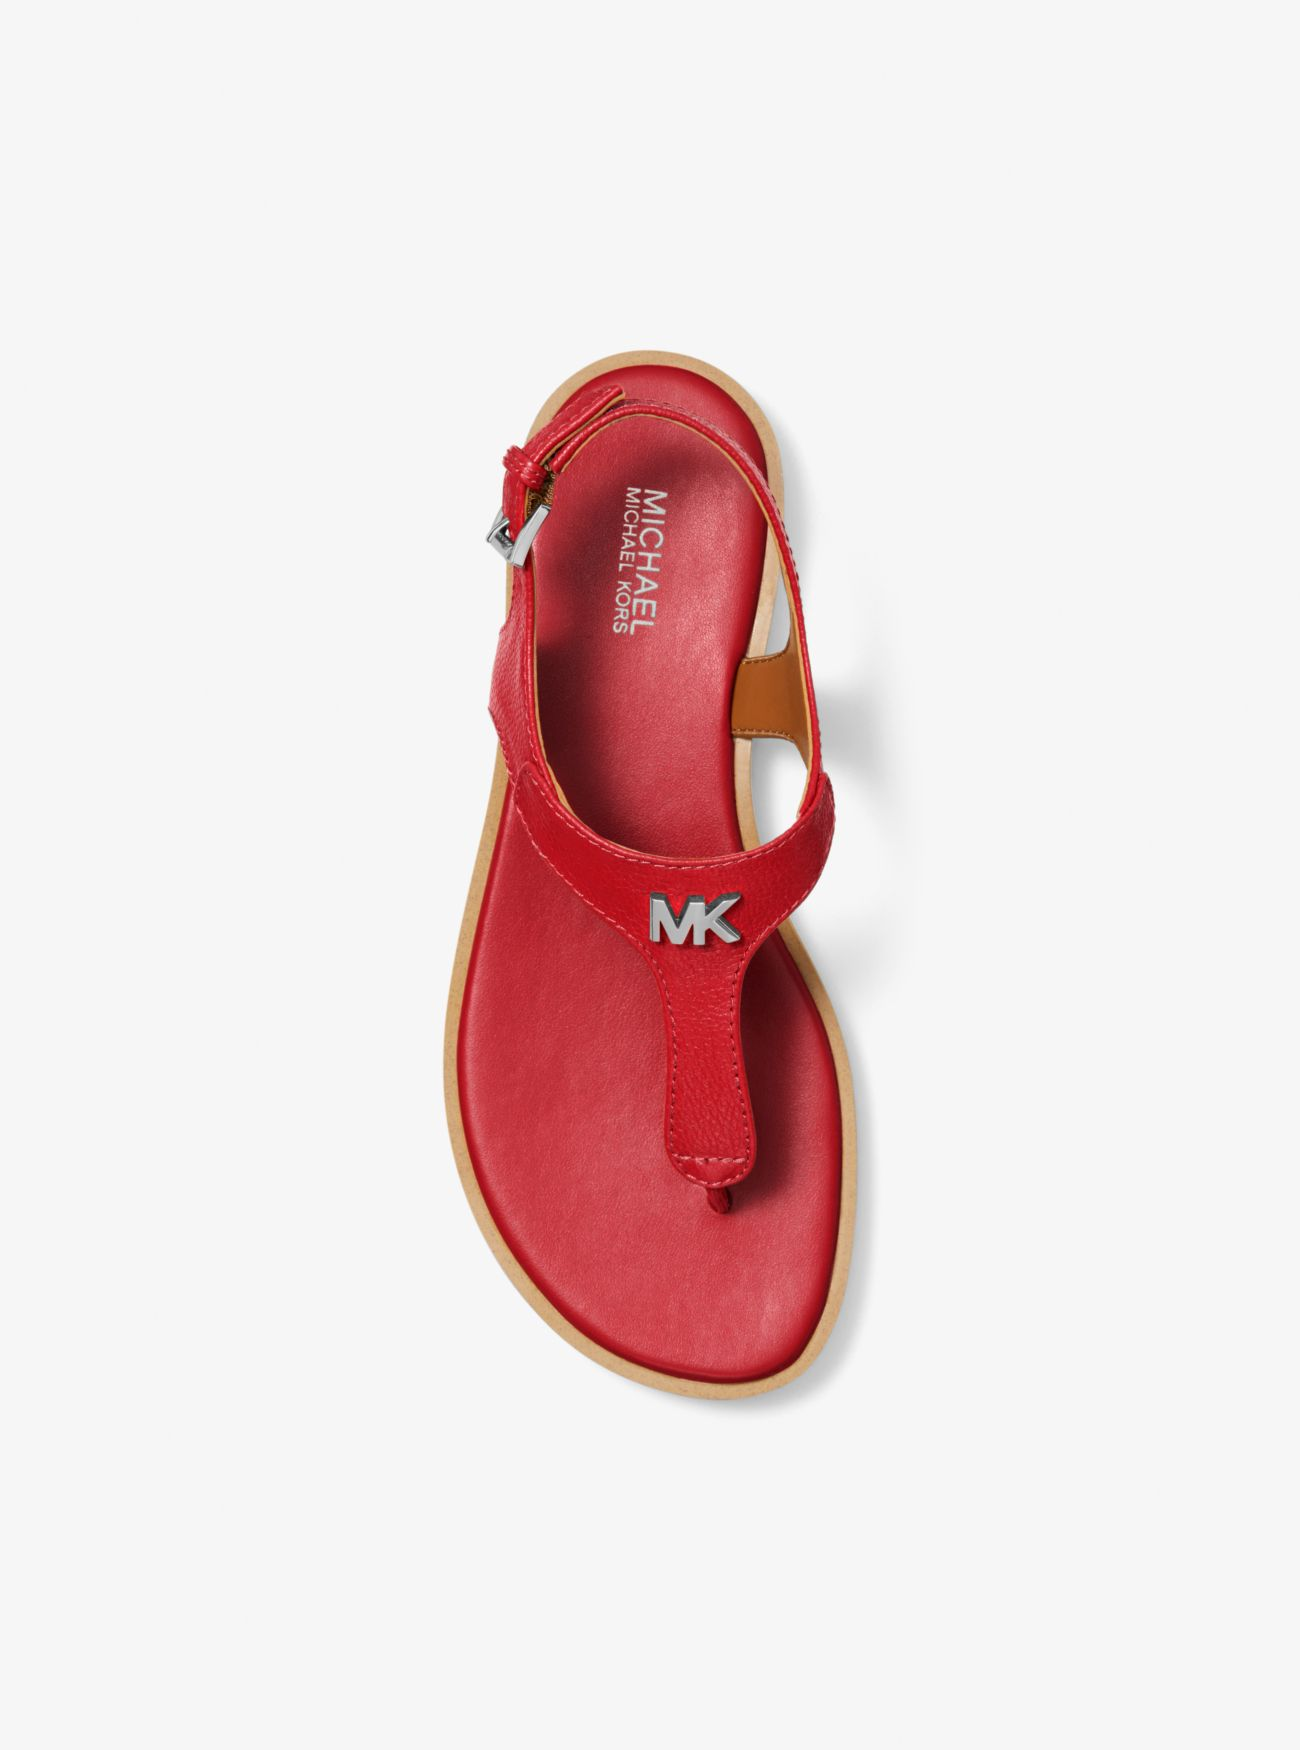 5e318885f9d0 Brady Leather Sandal Brady Leather Sandal Brady Leather Sandal. MICHAEL  Michael Kors